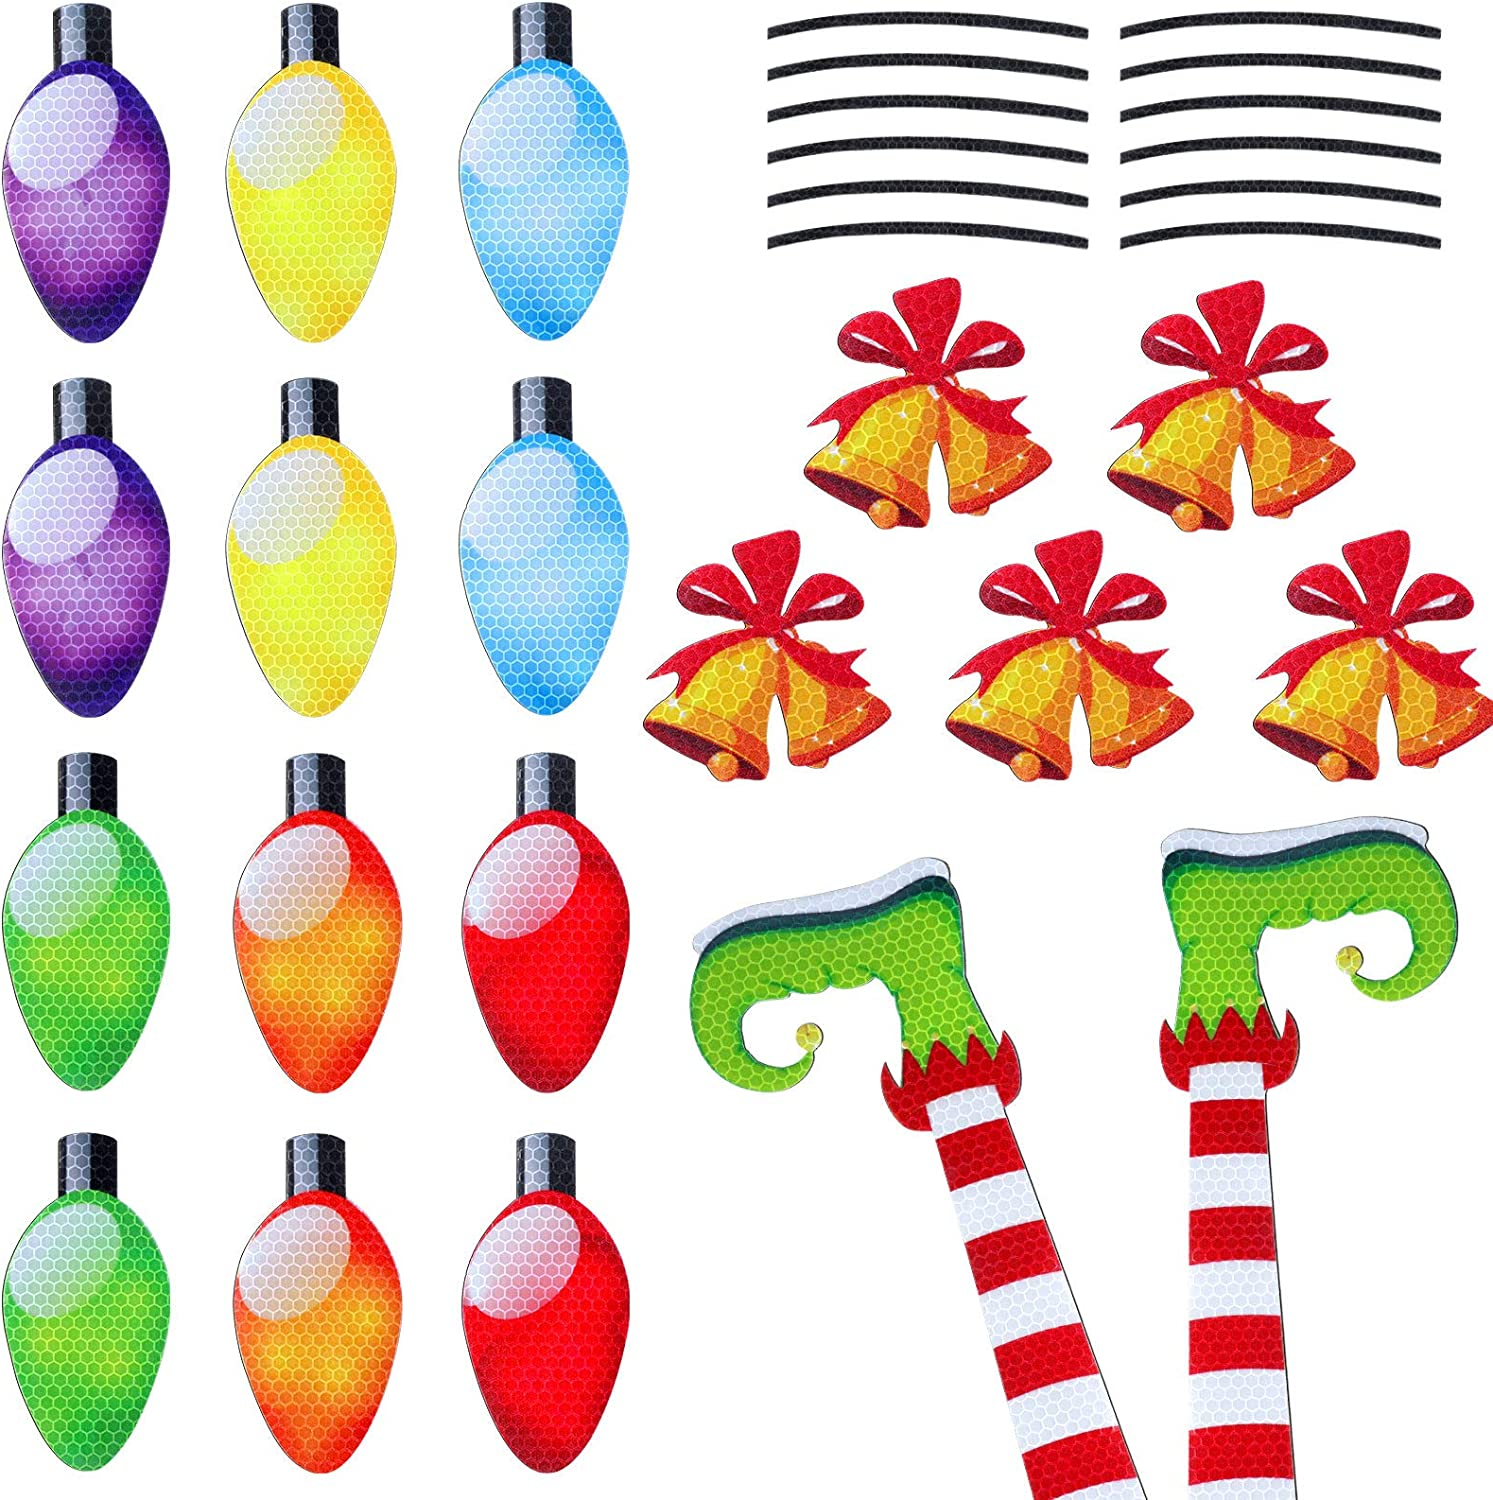 31 Pieces Christmas Car Magnets Elf Legs Christmas Bell Reflective Magnetic Decoration Decal for Car Fridge Refrigerator Garage Mailbox Vehicle Truck Xmas Holiday Decorations